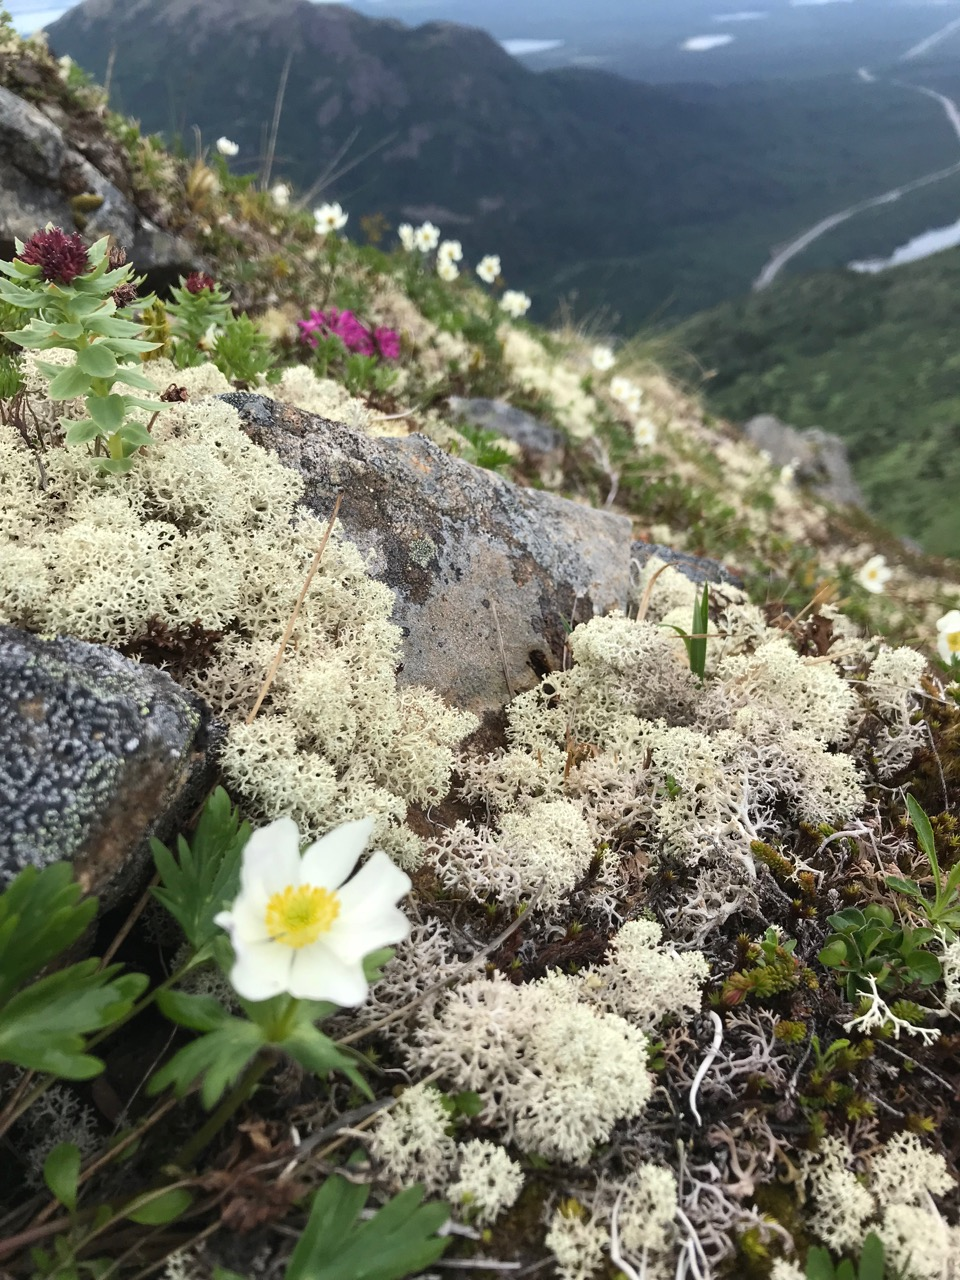 Reindeer moss (actually a lichen) blankets the mountainside of a peak outside of Soldotna, Alaska.